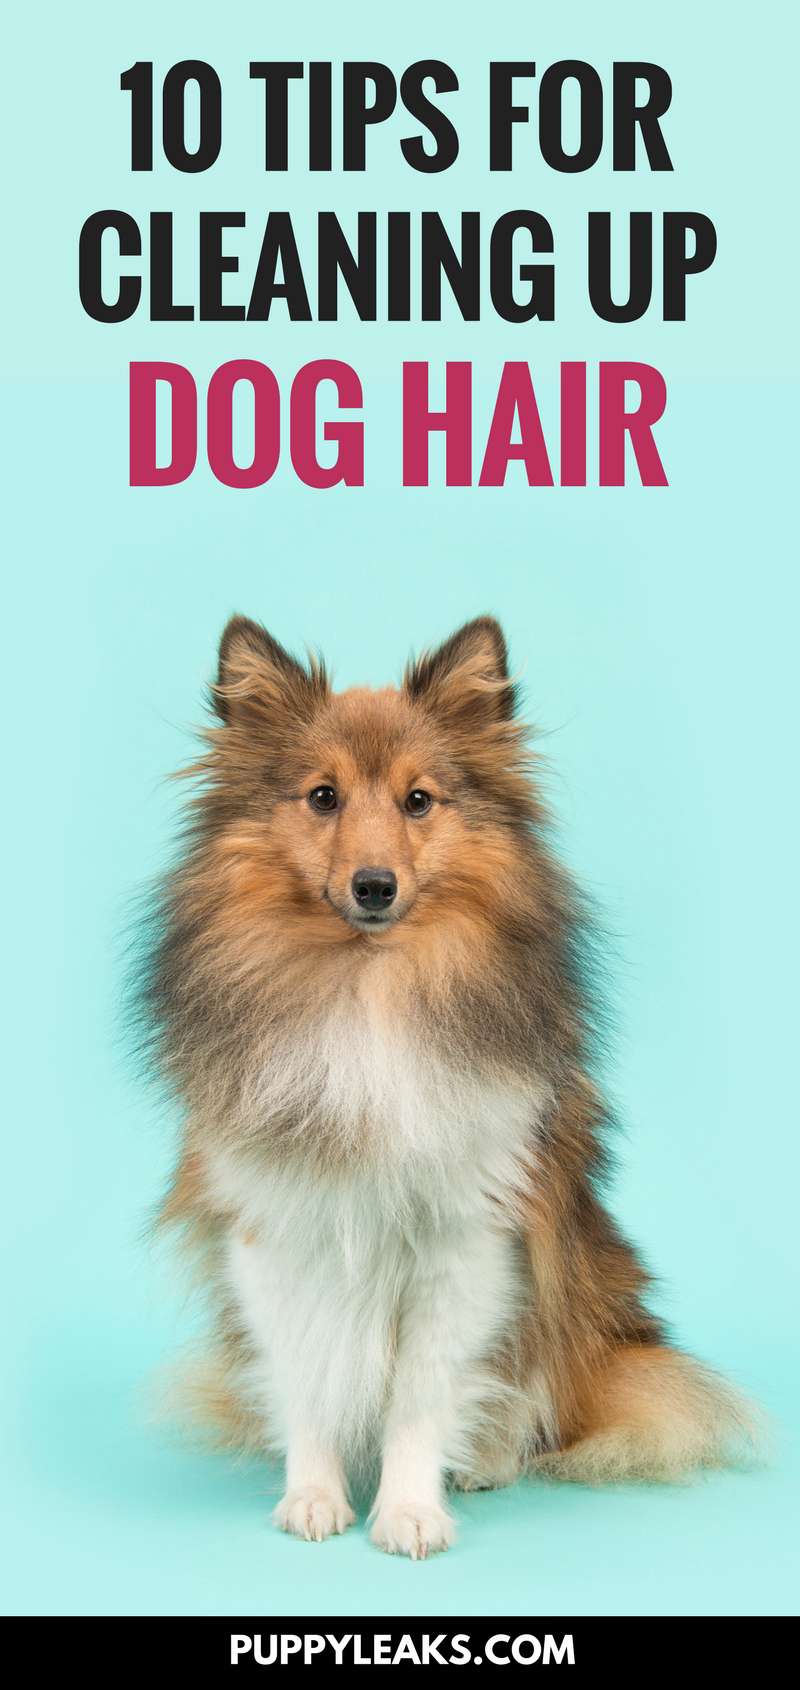 Does your dog's hair get everywhere? Here's 10 easy tips for cleaning up dog hair. From using rubber gloves on furniture to using tape to pick off pet hair from your clothes, these are my favorite hacks for picking up pet hair.